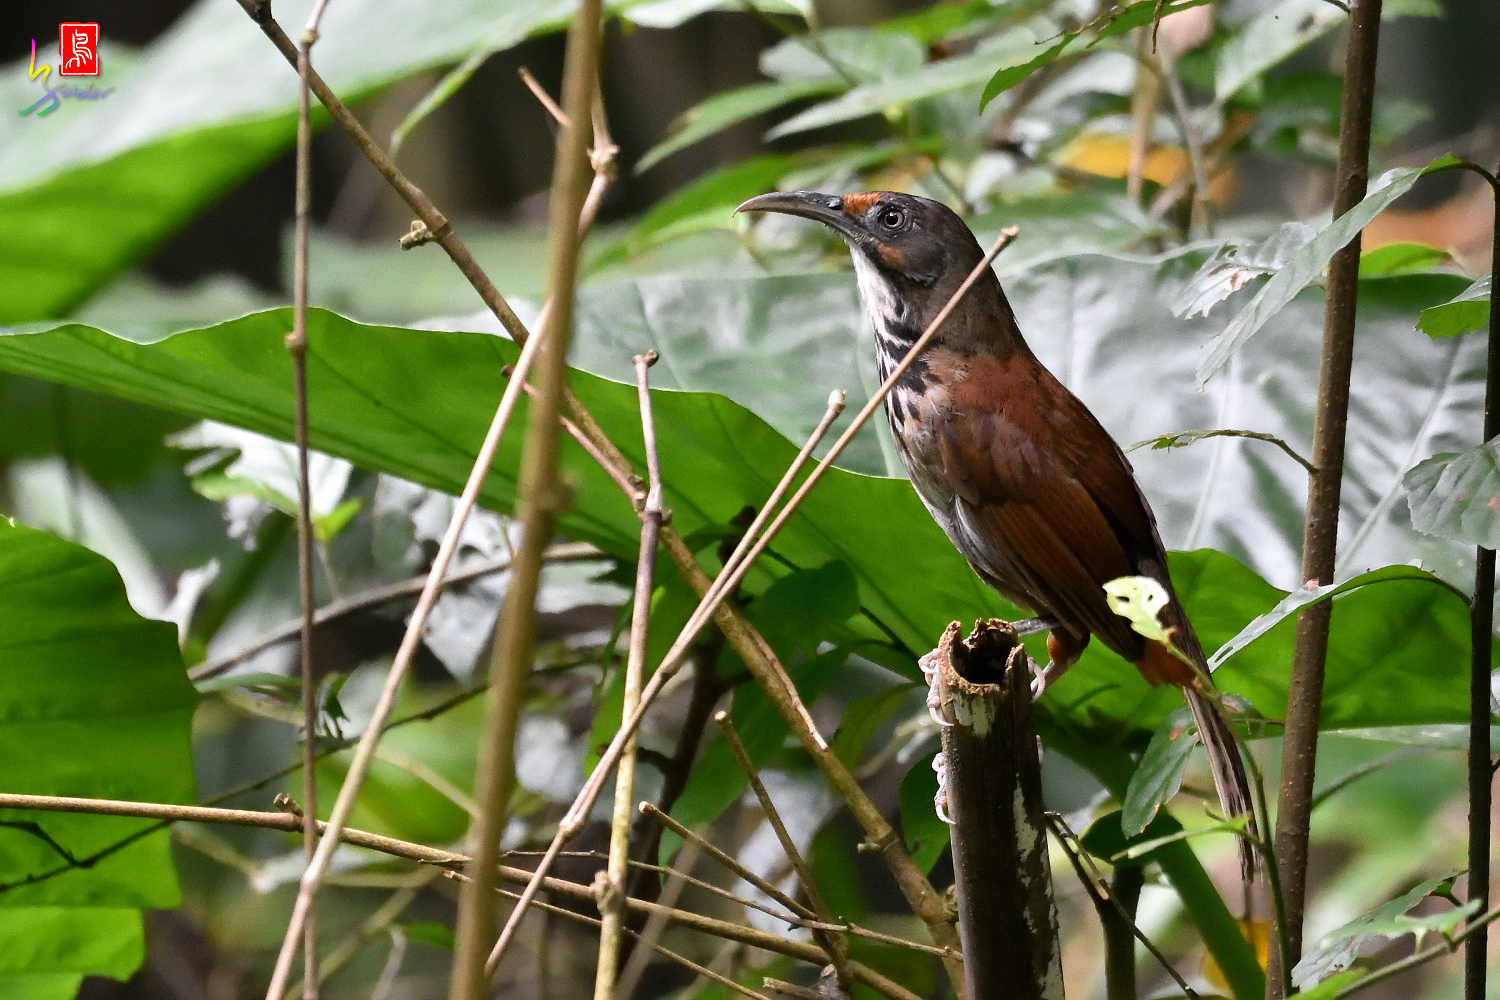 Rusty-cheeked_Scimitar-babbler_3252